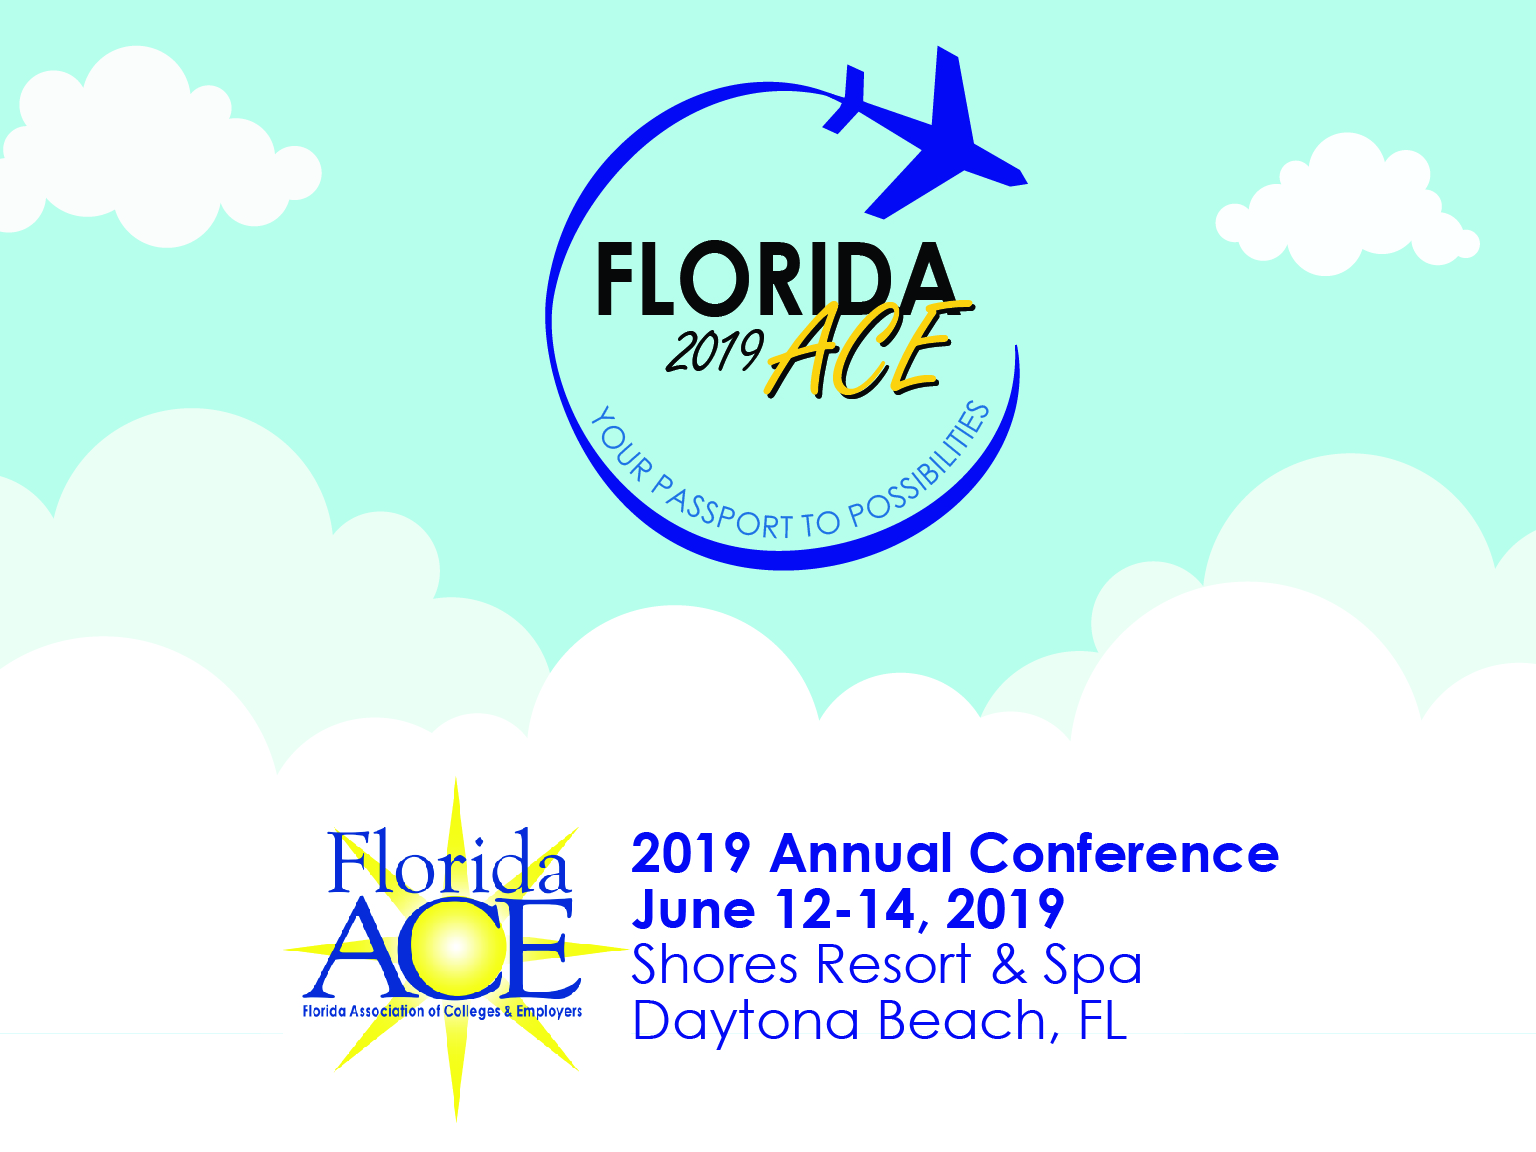 FloridaACE 2019 Conference